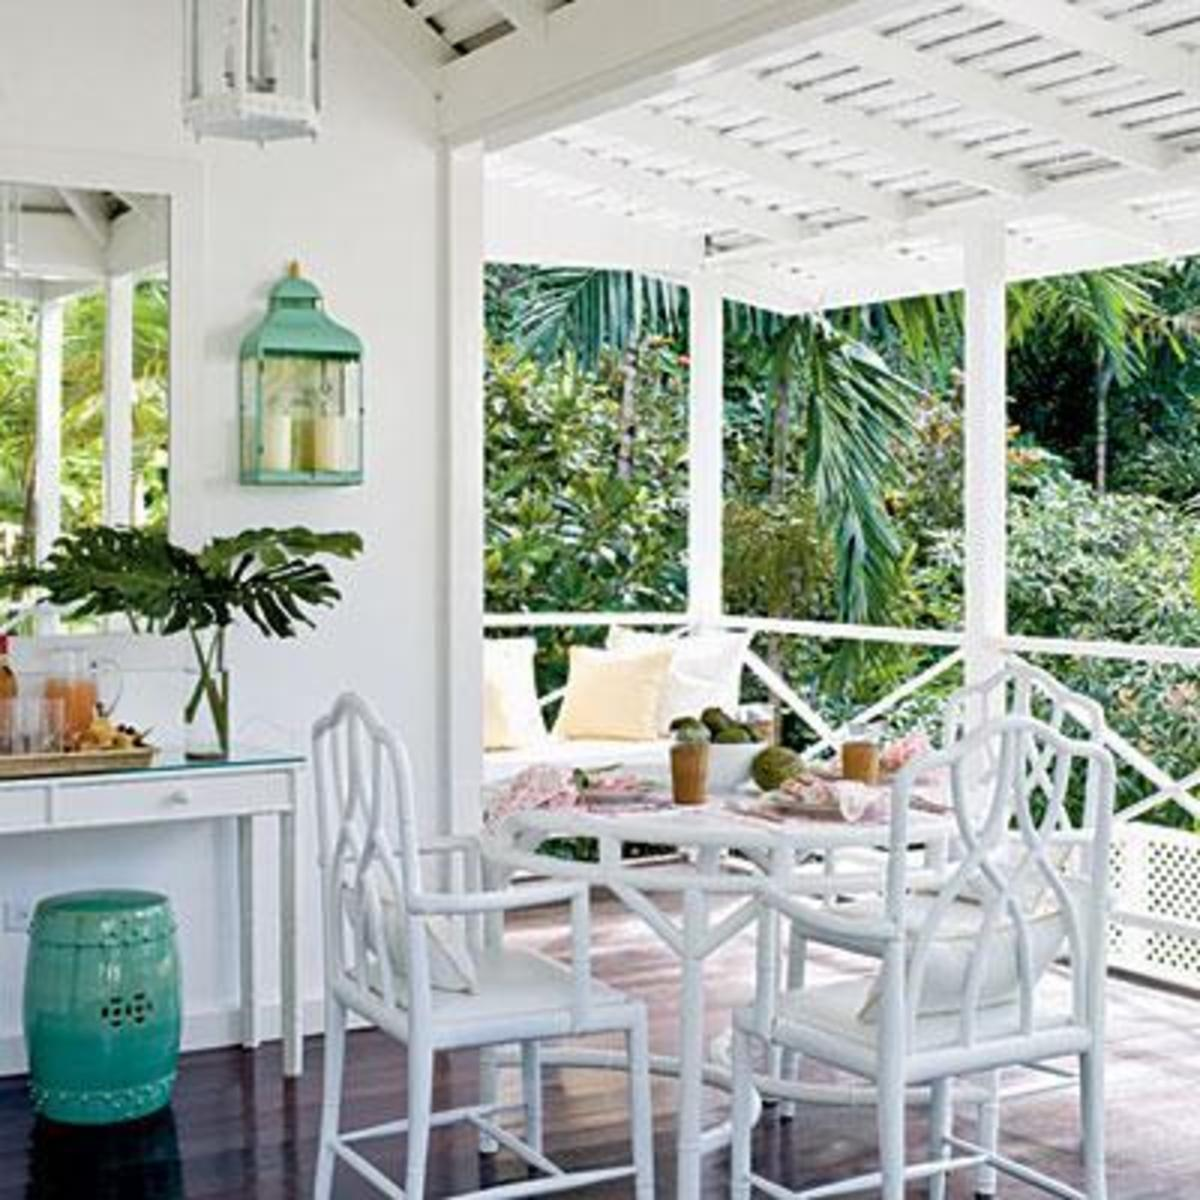 Beautiful Lanais with white table and chairs and painted wood beam ceiling accented with turquoise